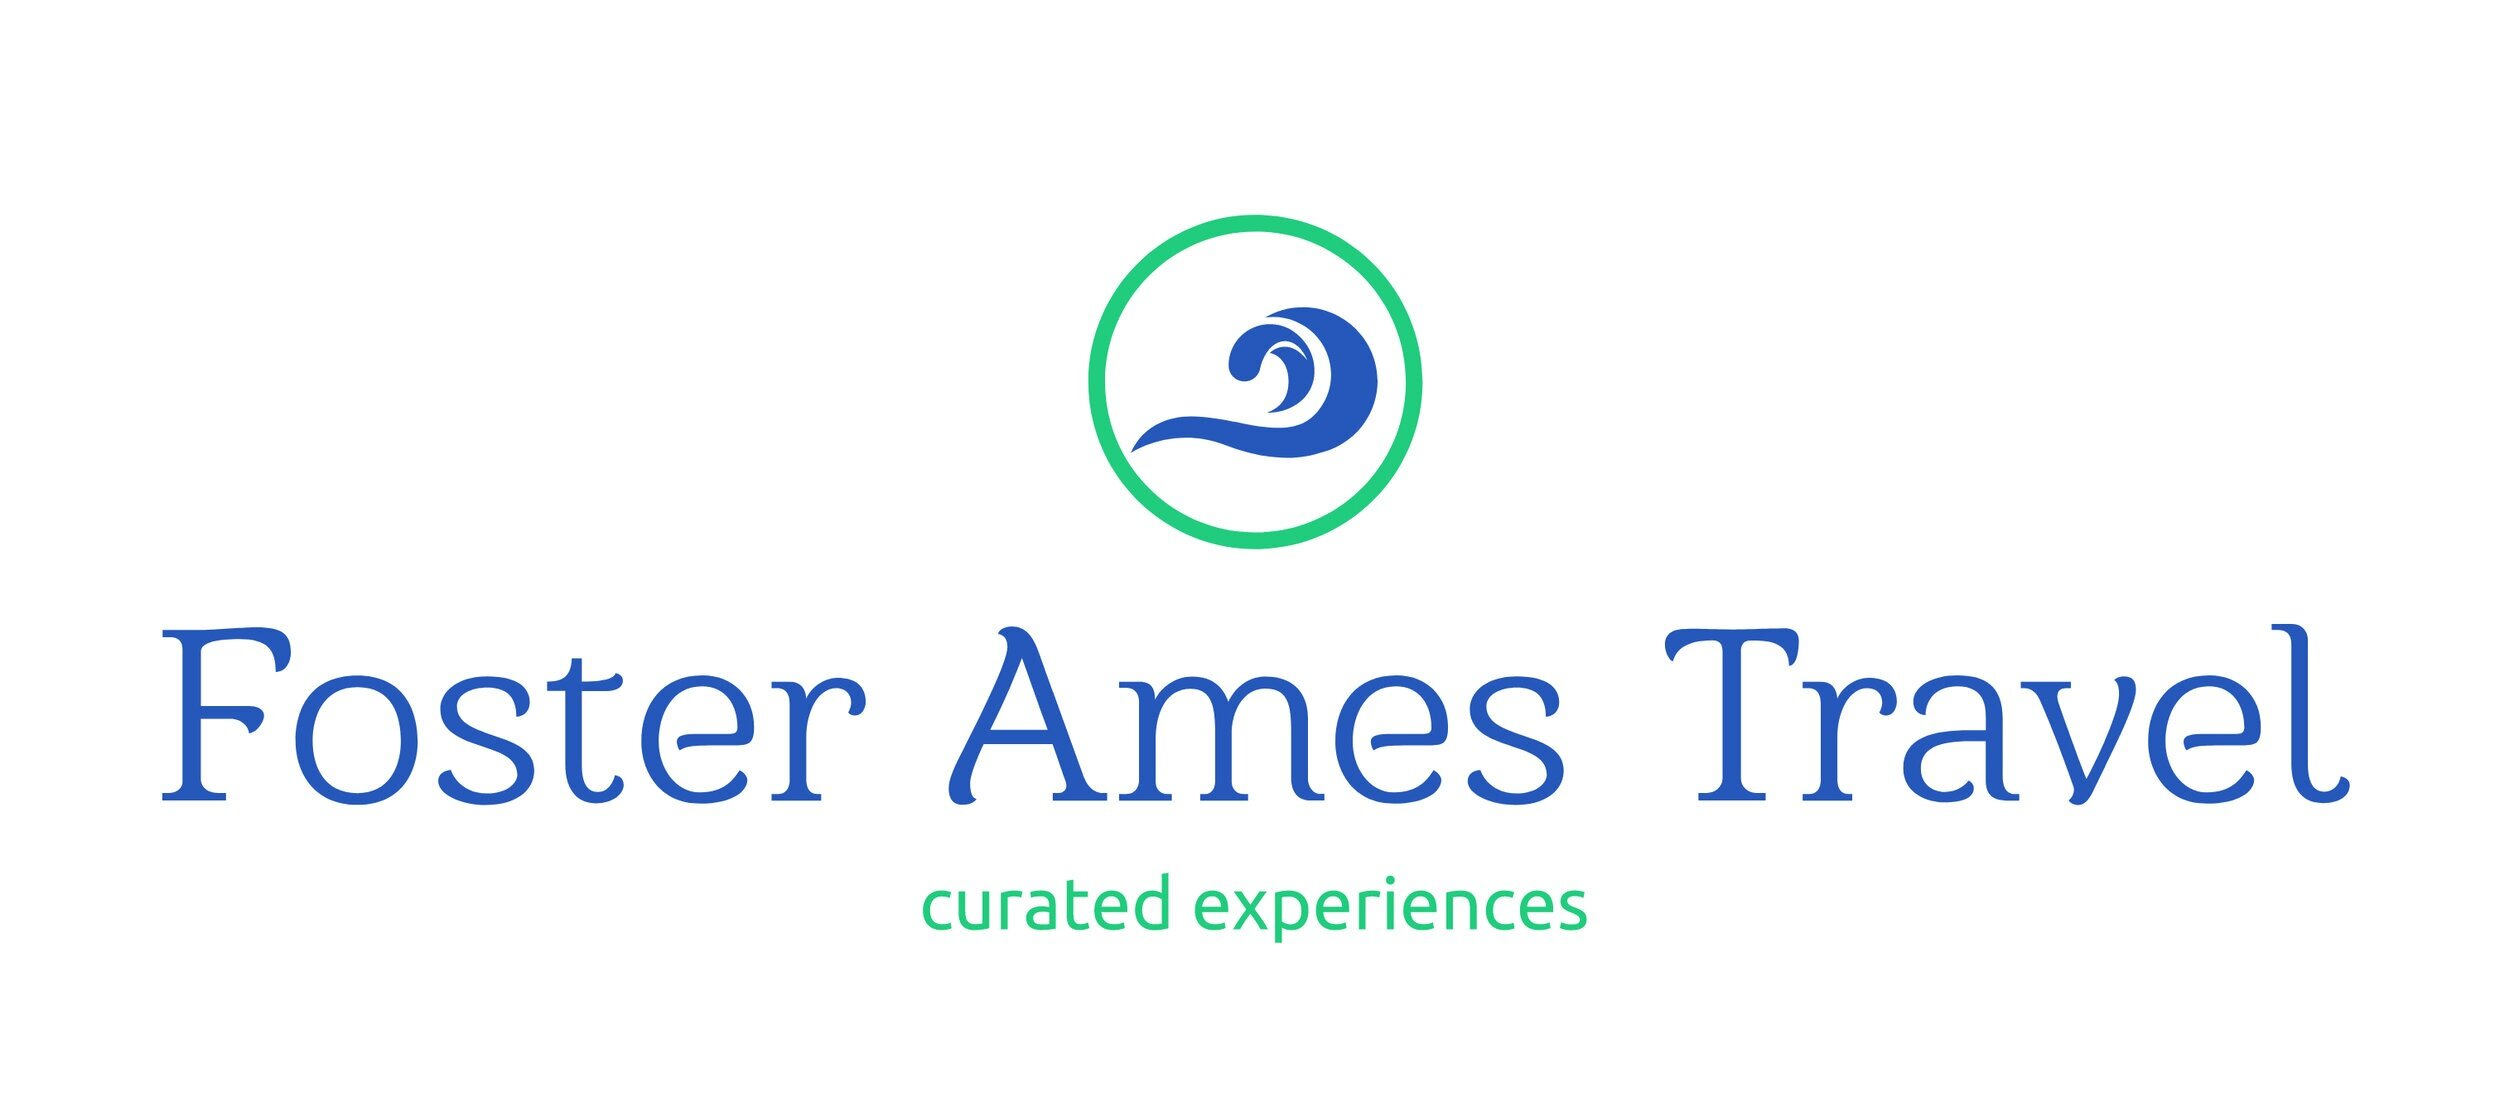 Foster Ames Travel Logo.jpg